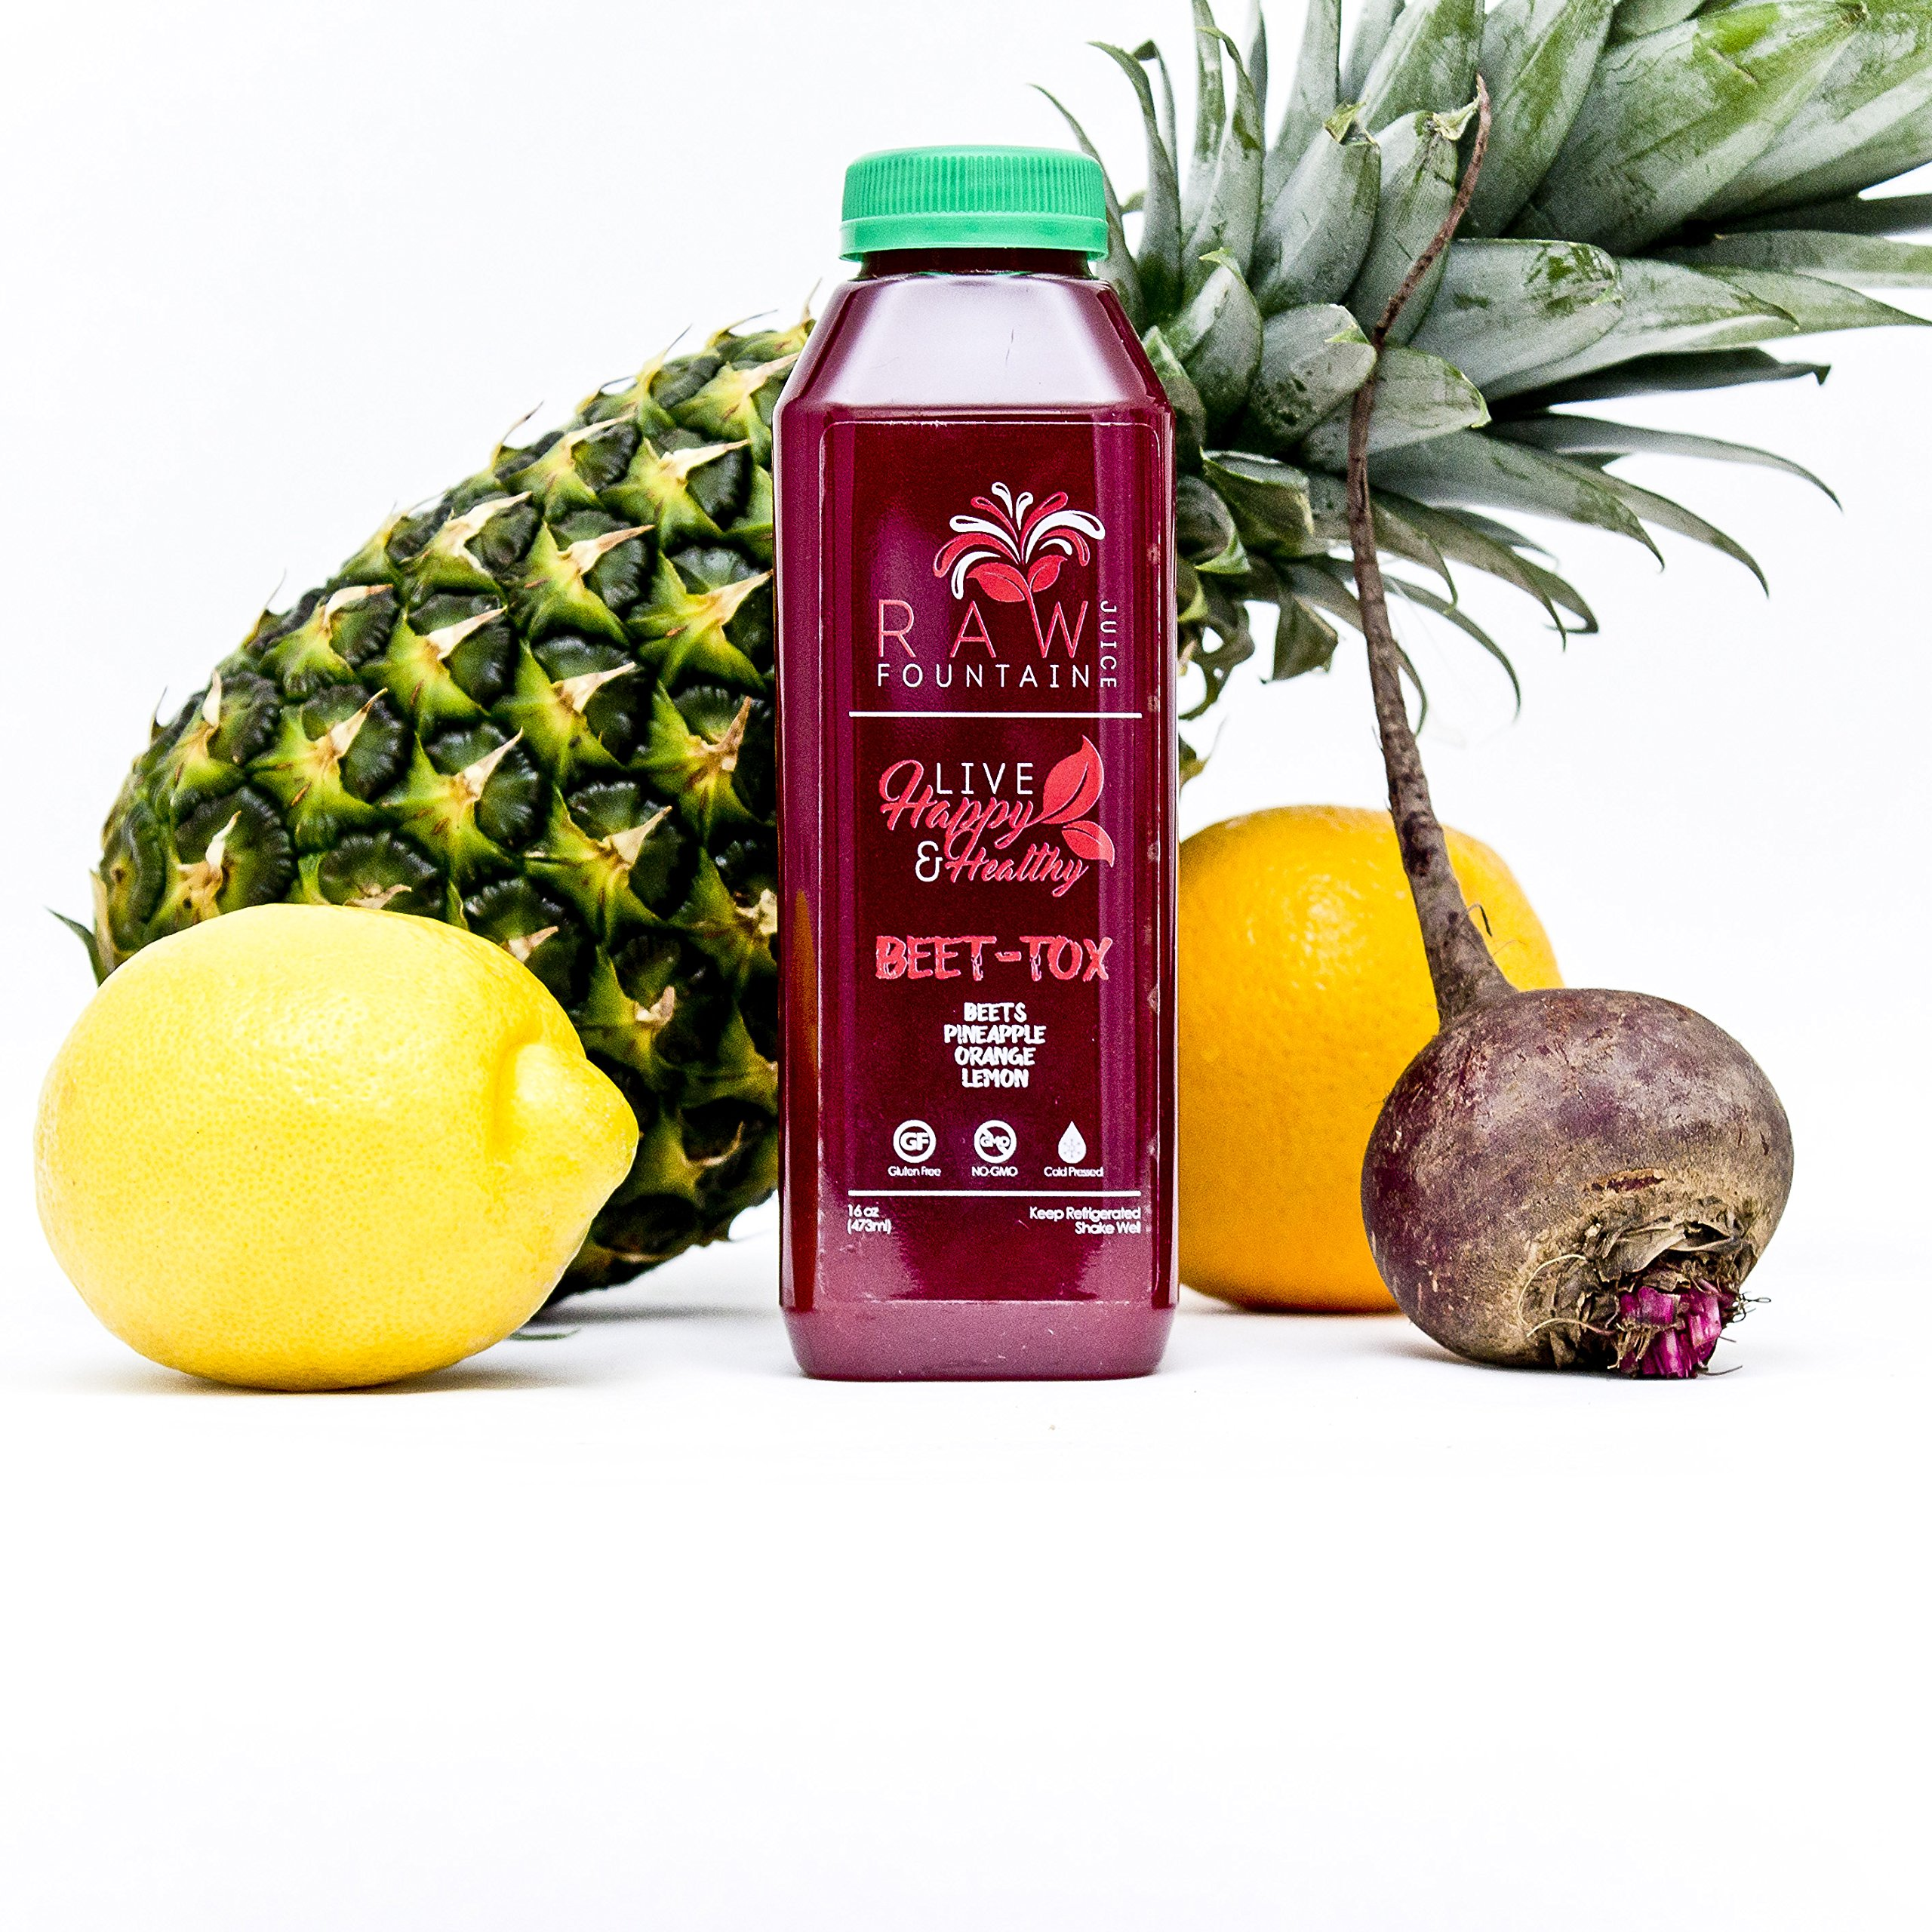 7 Day Juice Cleanse by Raw Fountain Juice - 100% Fresh Natural Organic Raw Vegetable & Fruit Juices - Detox Your Body in a Healthy & Tasty Way! - 42 Bottles (16 fl oz) + 7 BONUS Ginger Shots by Raw Threads (Image #4)